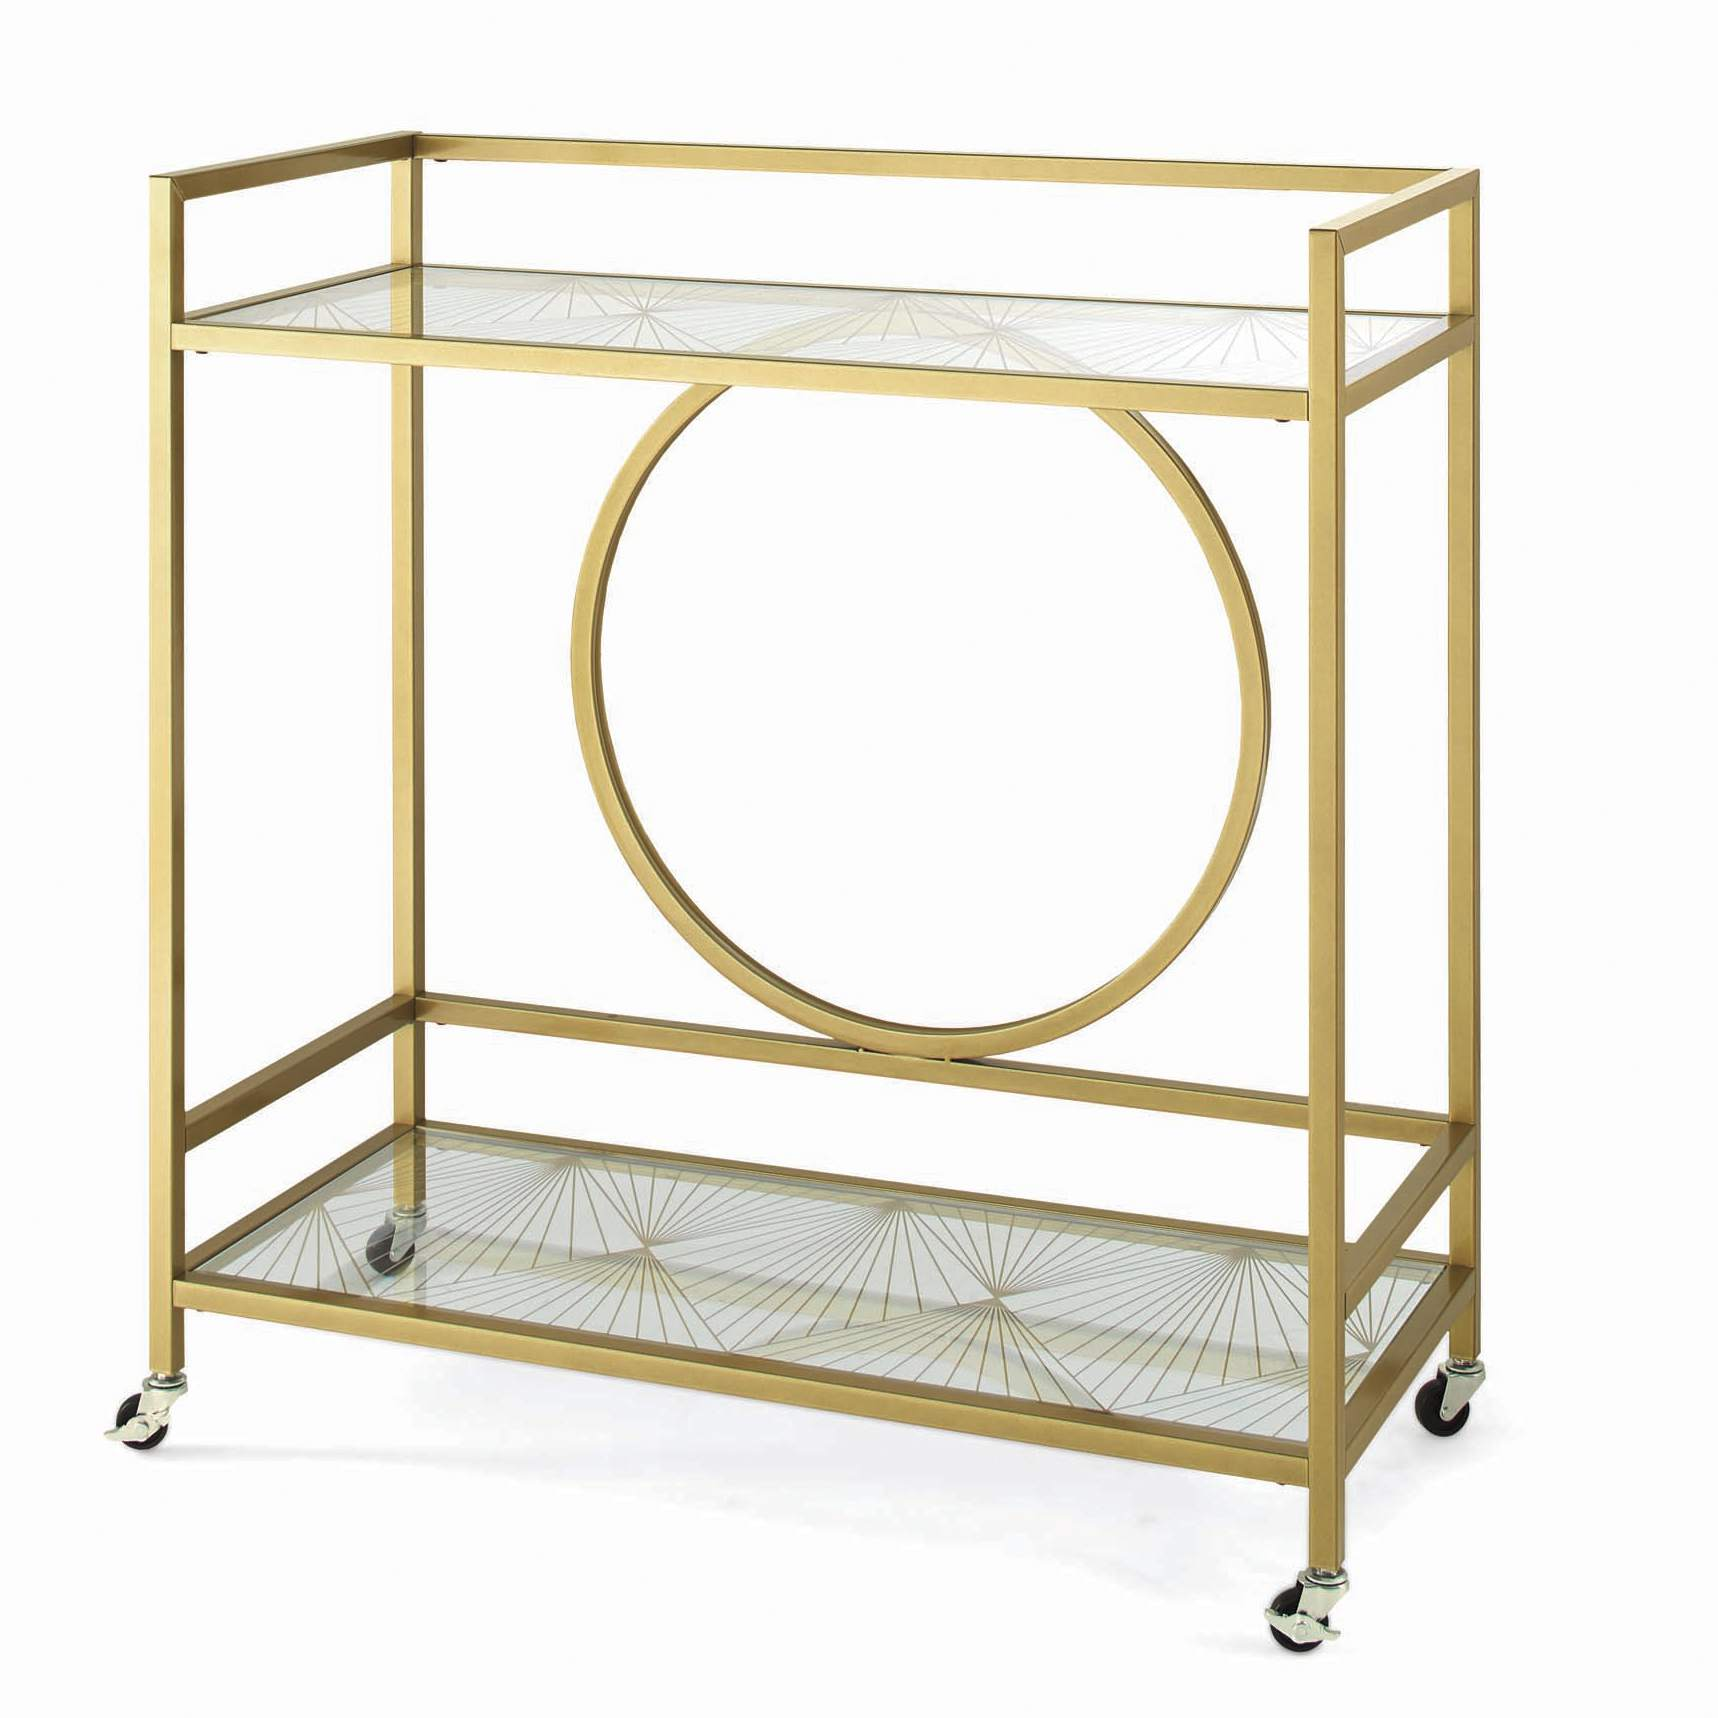 Better Homes and Gardens Nola Bar Cart—Amazon Mother's Day Gifts